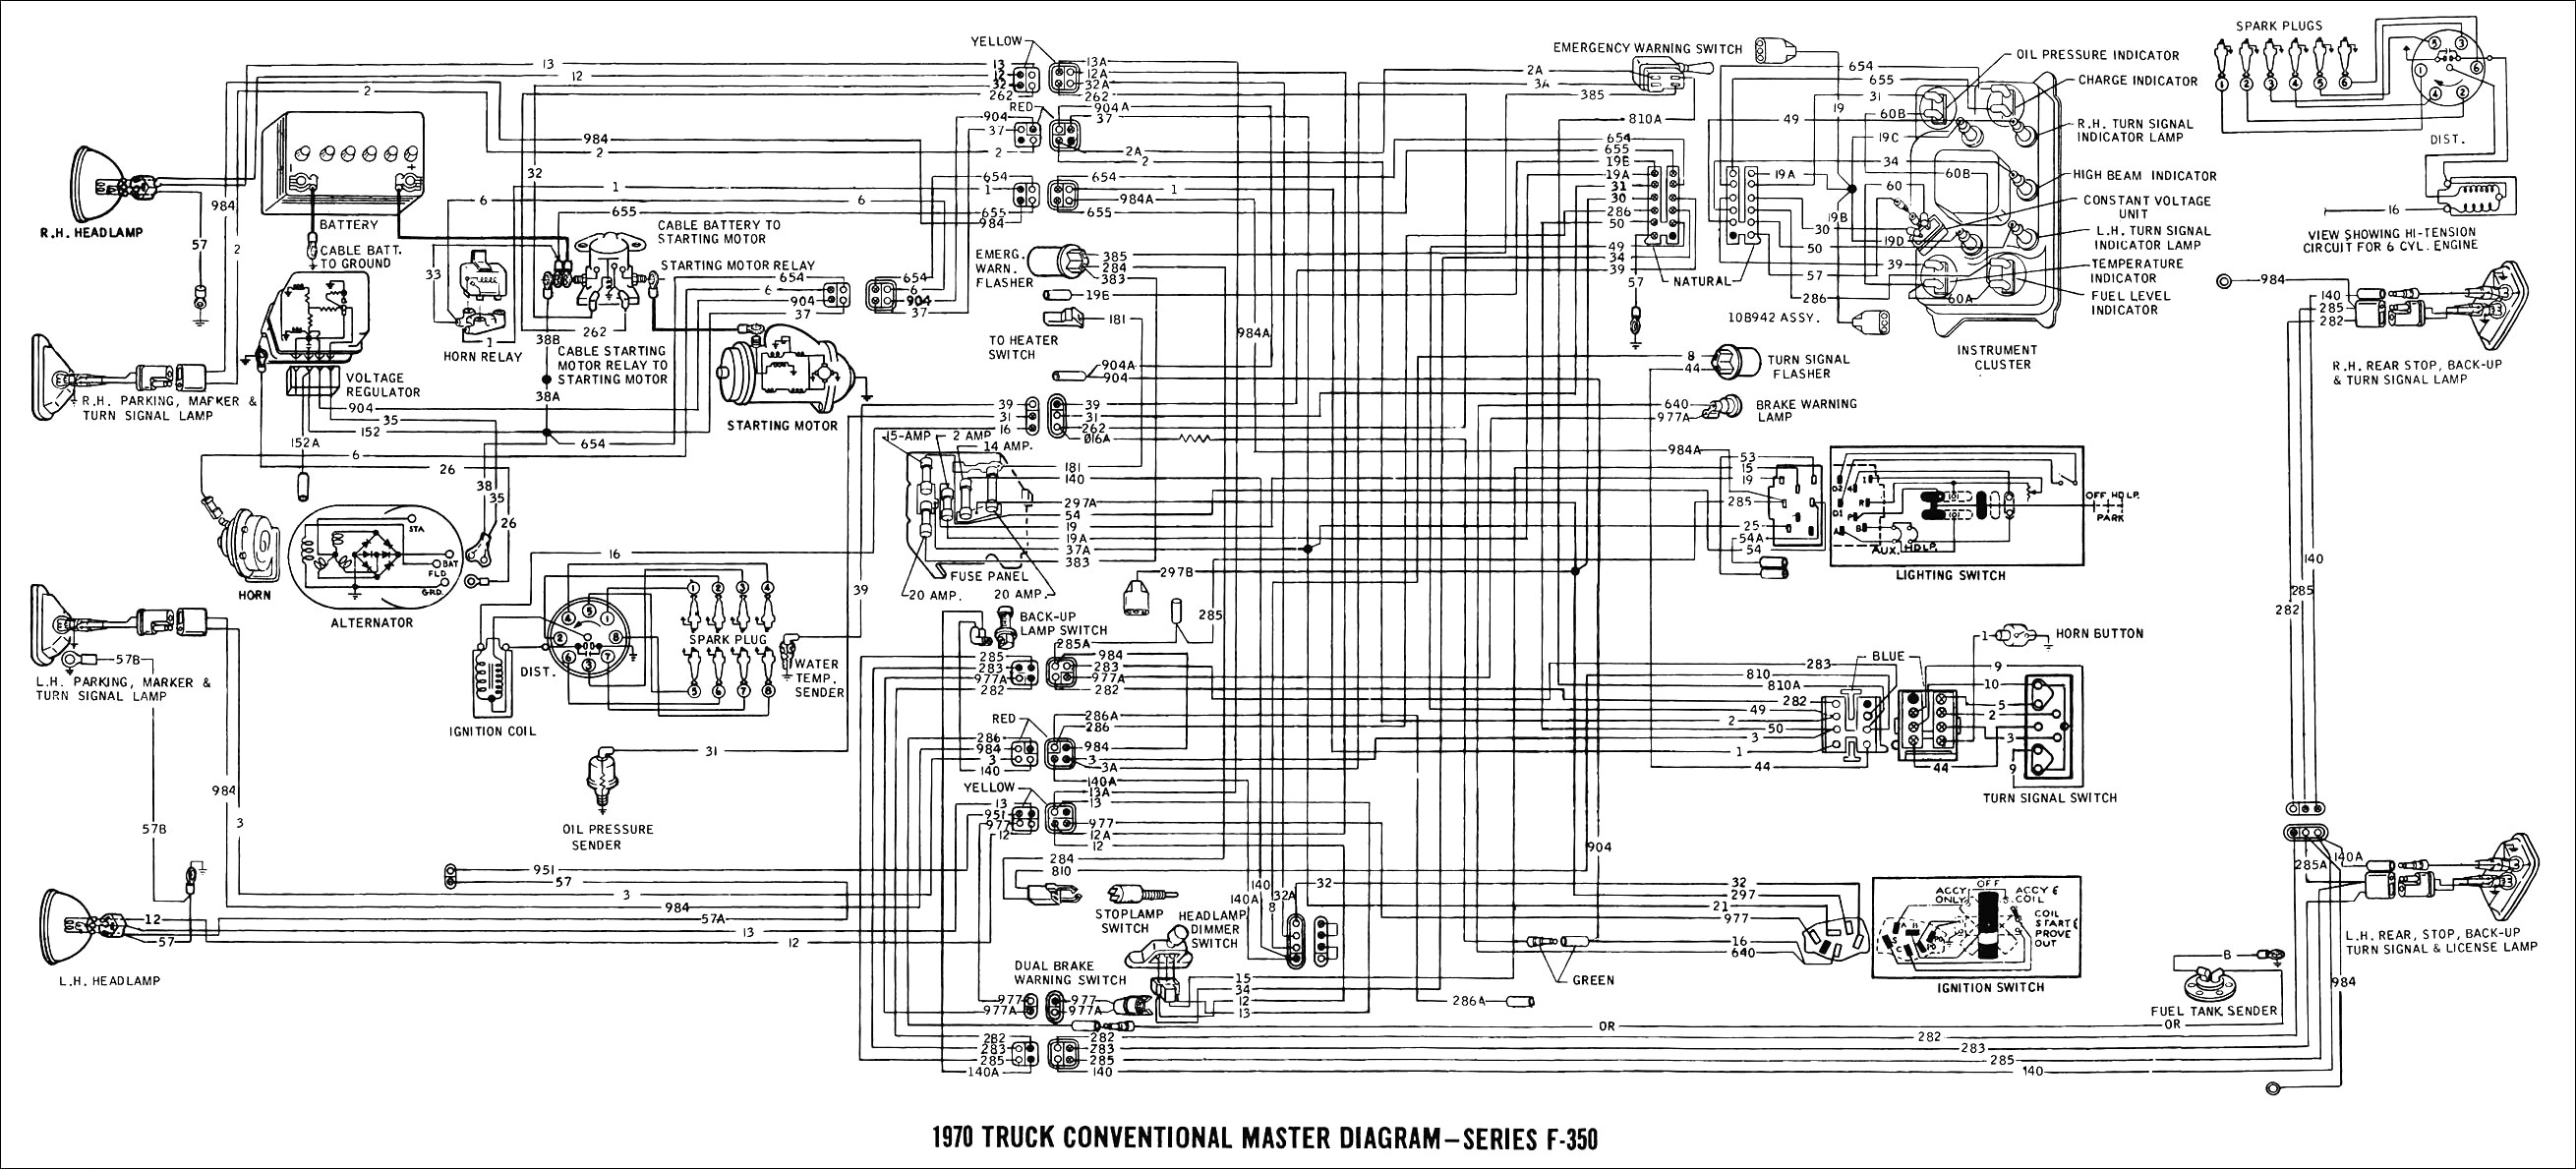 97 ford ranger engine diagram my wiring diagram rh detoxicrecenze com Ford F-150 4.9L Engine Ford 4.9 Engine Repairs